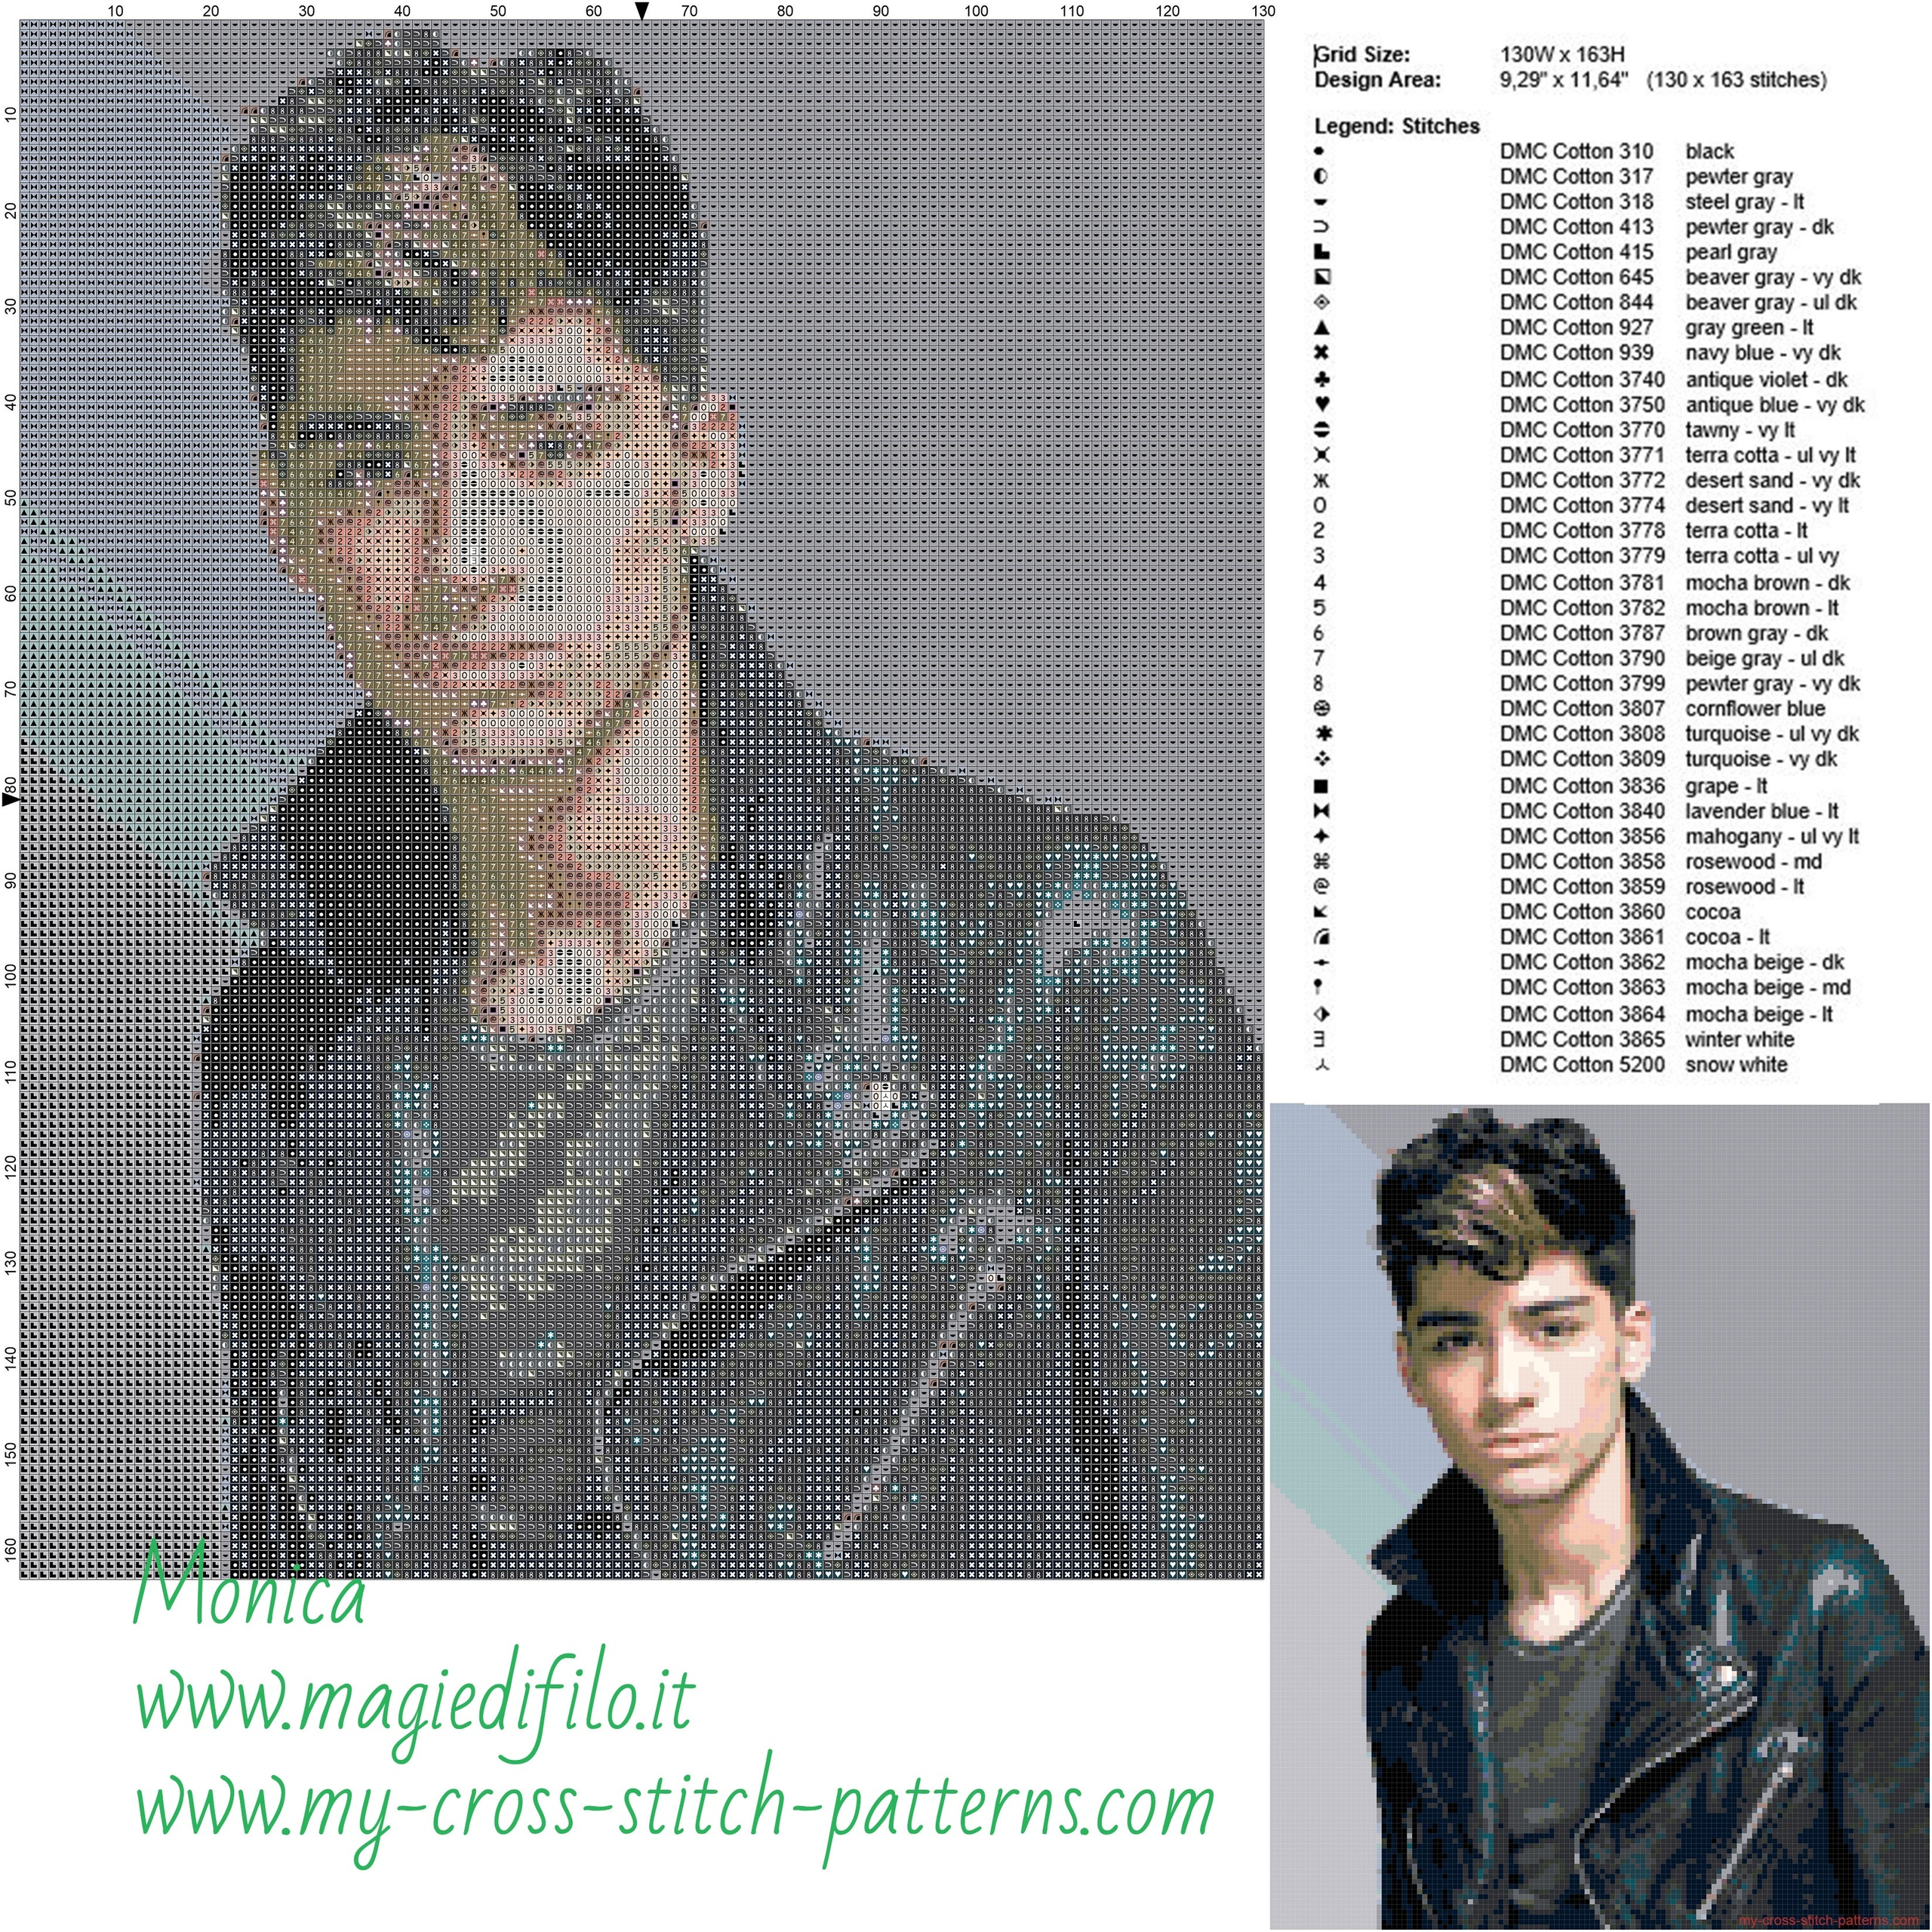 zayn_malik_one_direction_cross_stitch_pattern_